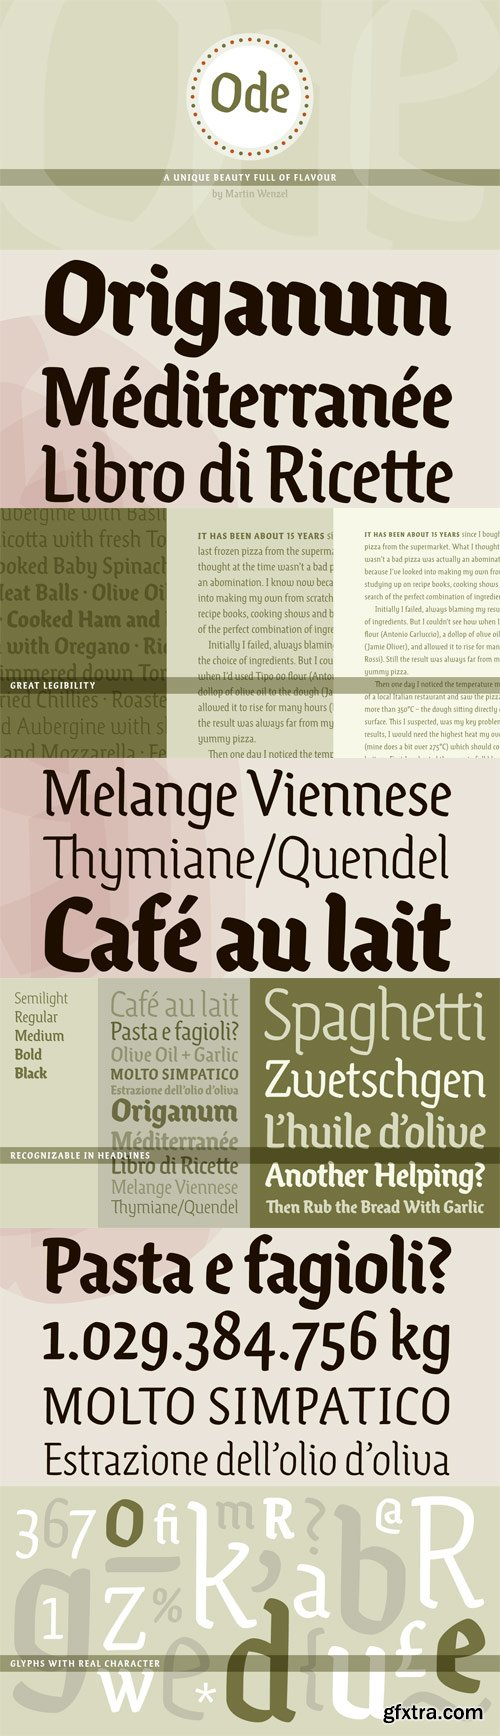 Ode Font Family - 5 Fonts for $219